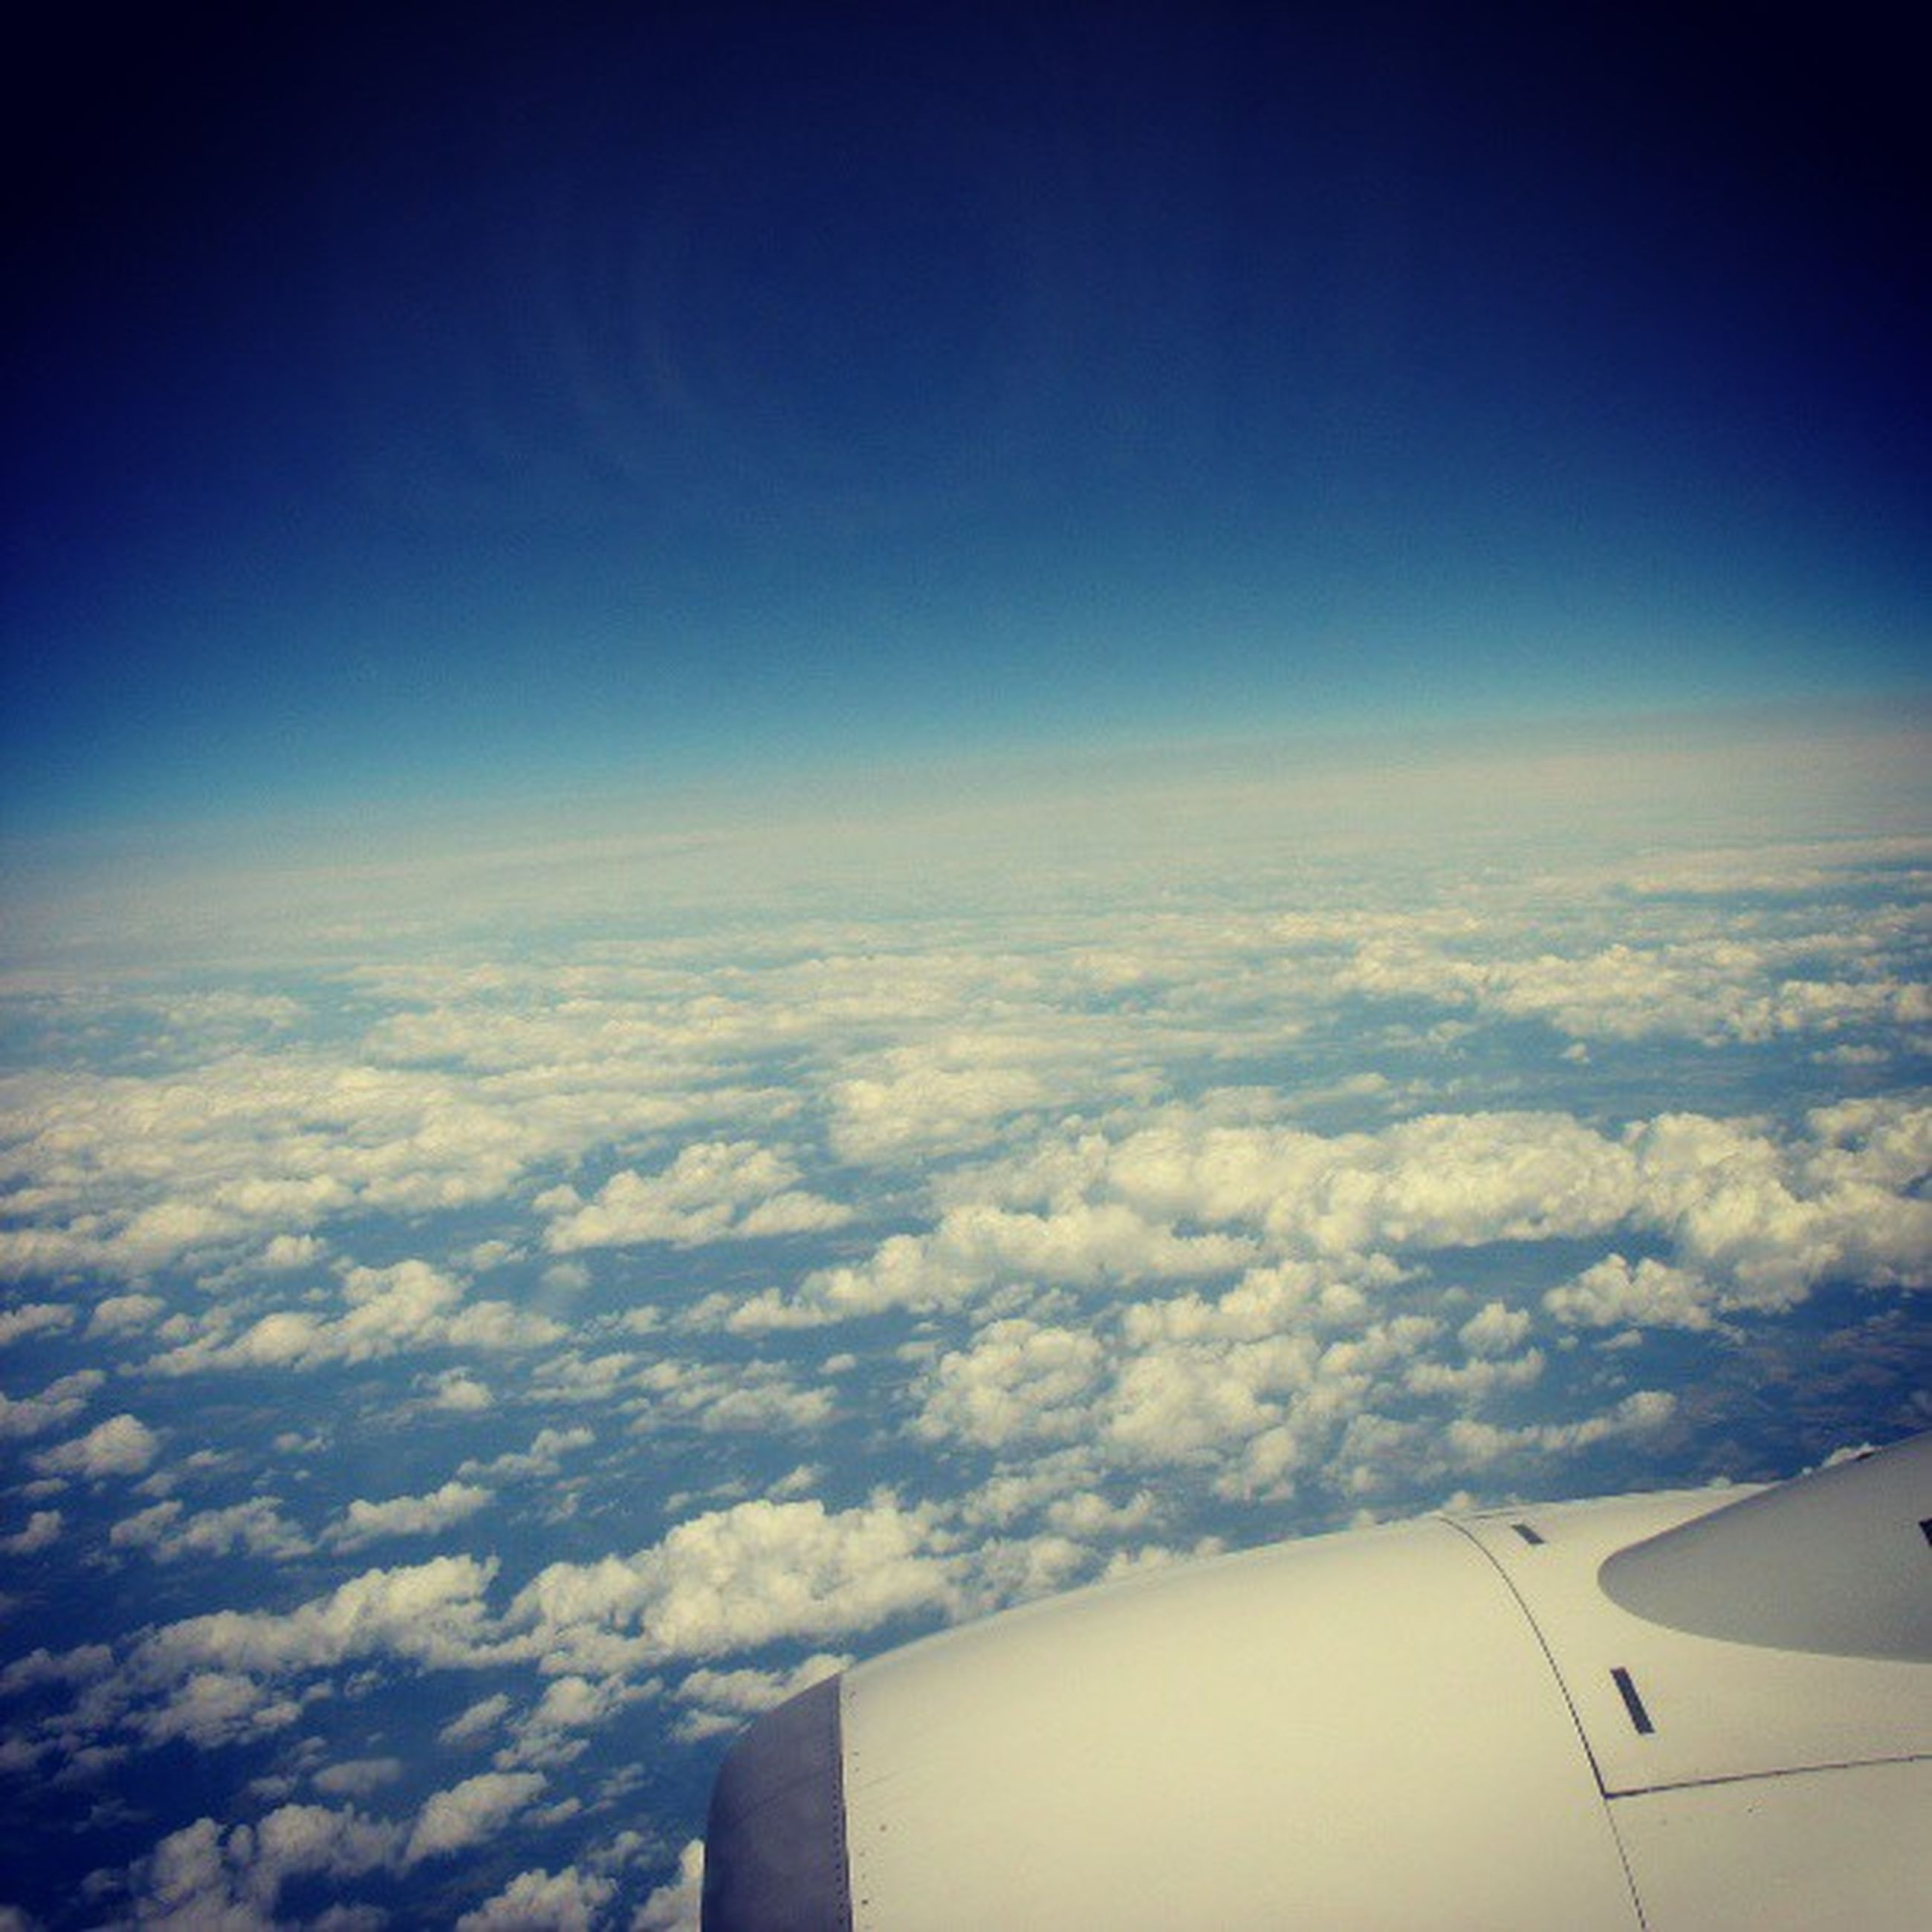 airplane, air vehicle, flying, aircraft wing, part of, sky, transportation, mode of transport, aerial view, cropped, cloudscape, cloud - sky, blue, scenics, mid-air, beauty in nature, journey, cloud, nature, aeroplane